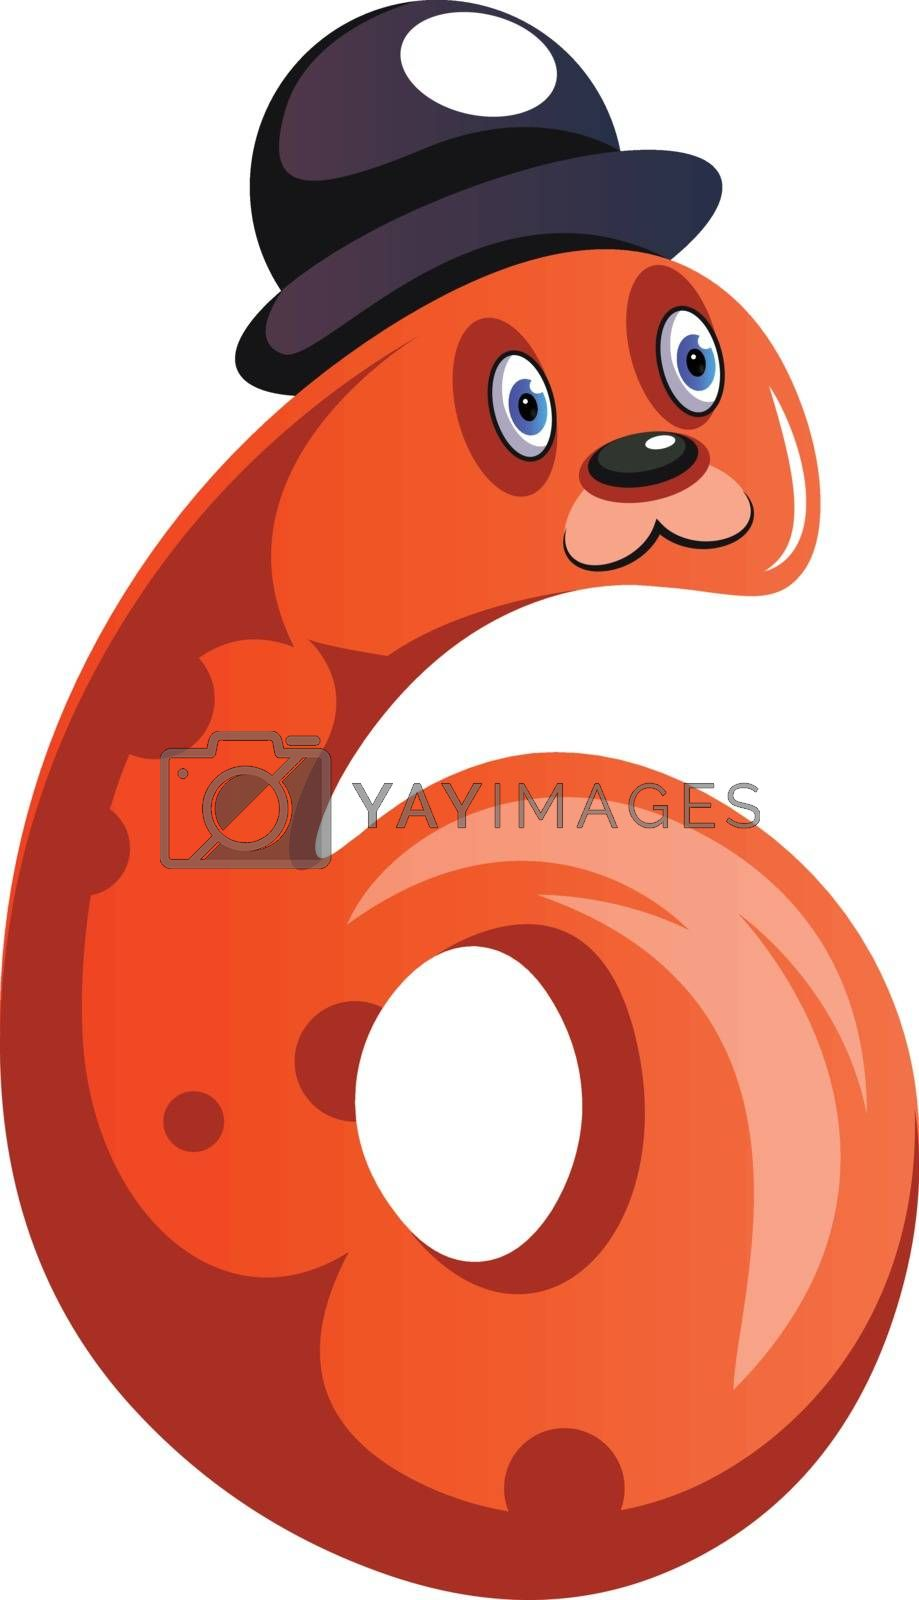 Royalty free image of Orange monster with a hat and number six shape illustration vect by Morphart